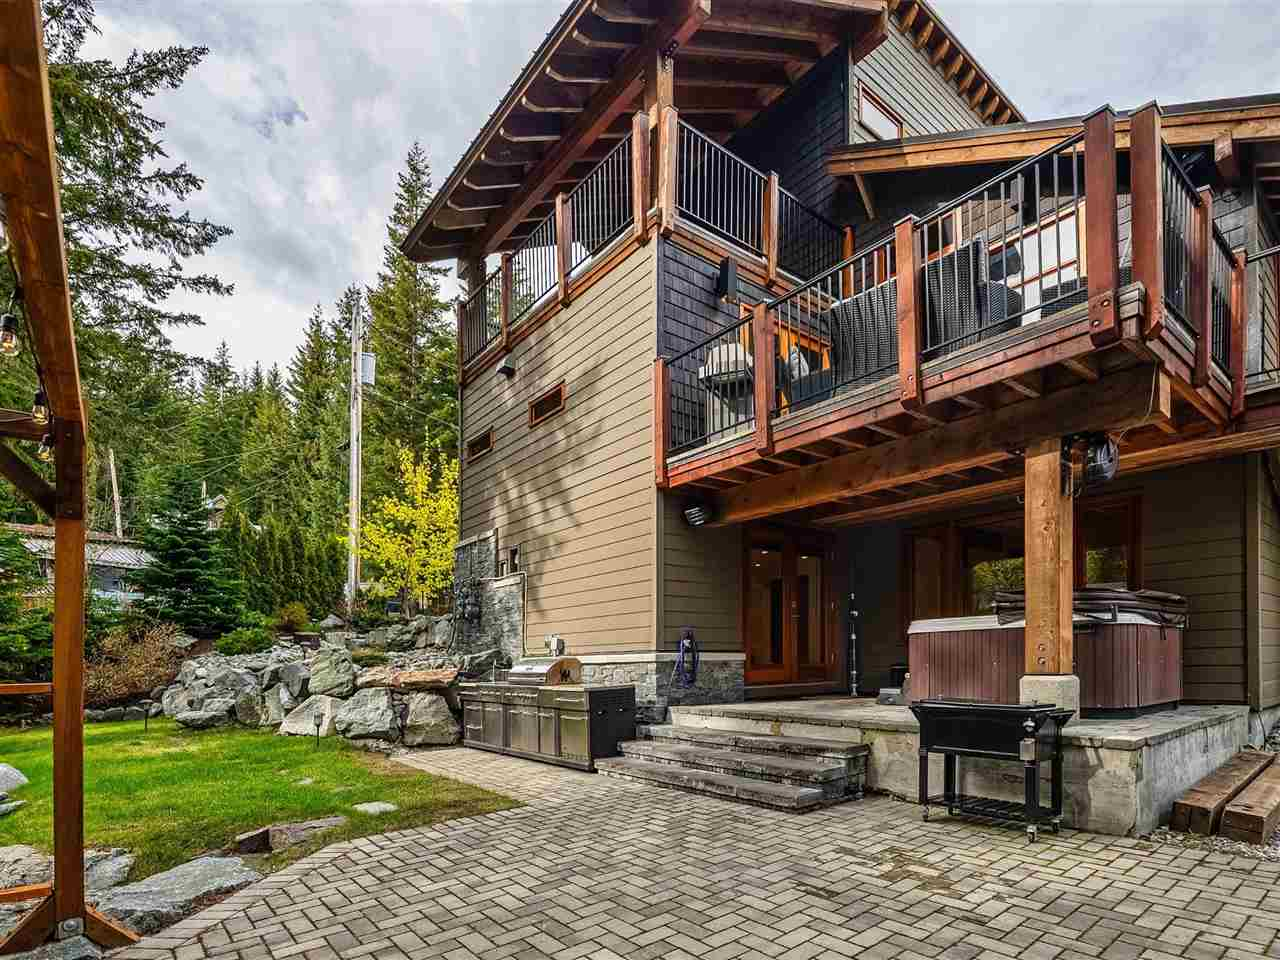 8745 IDYLWOOD PLACE - Alpine Meadows House/Single Family for sale, 7 Bedrooms (R2578936) - #35